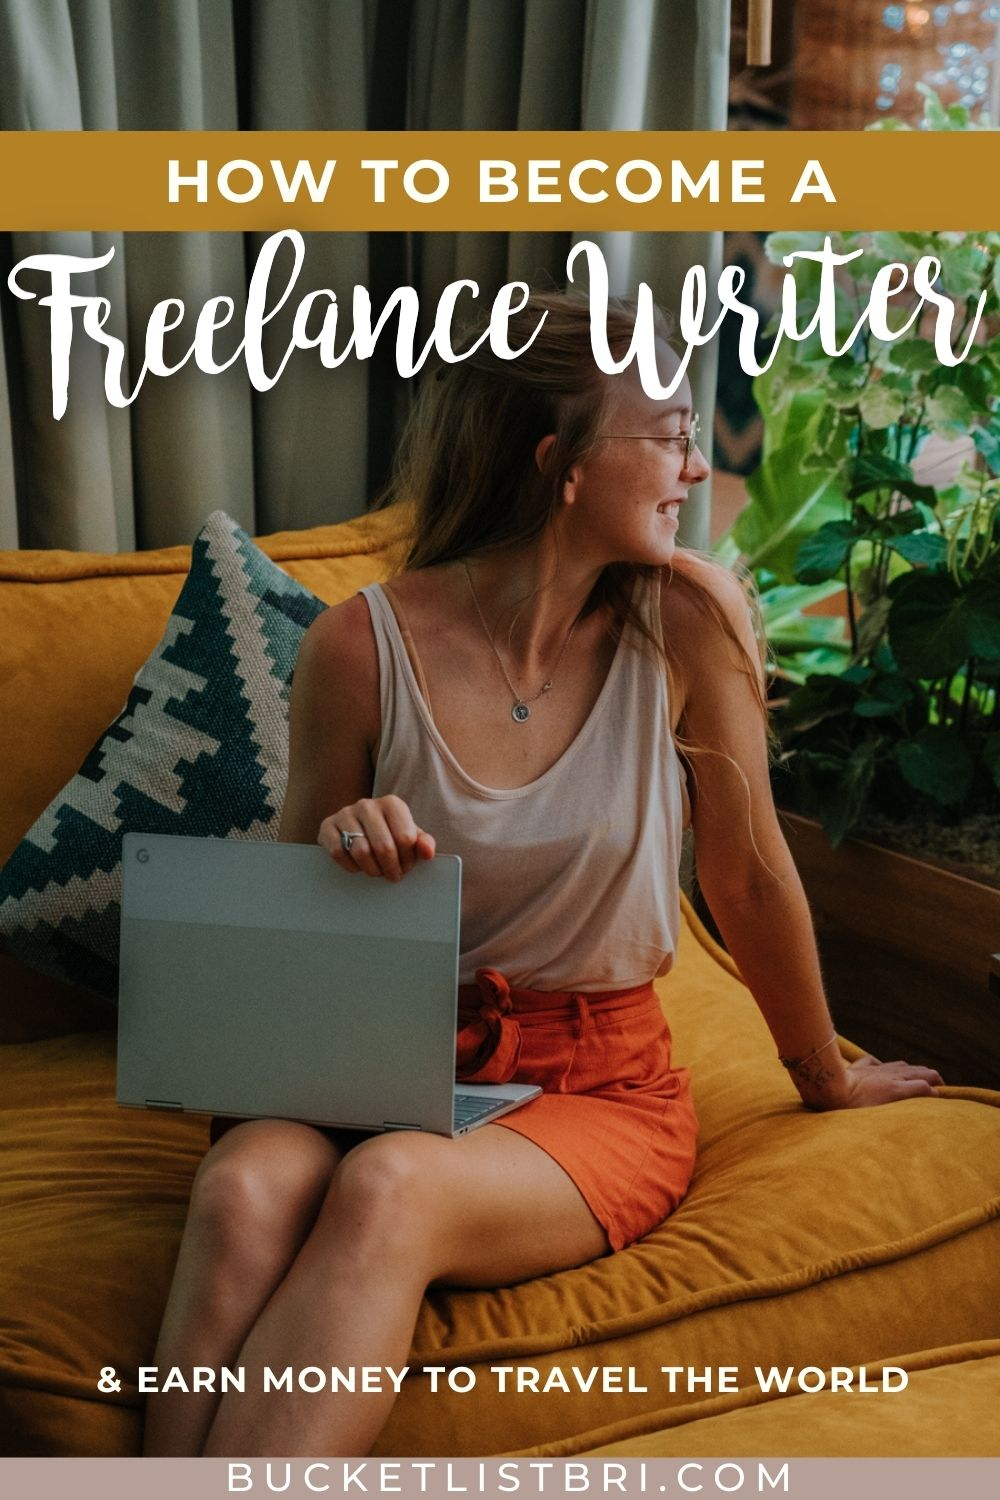 photo of female freelance writer with text overlay